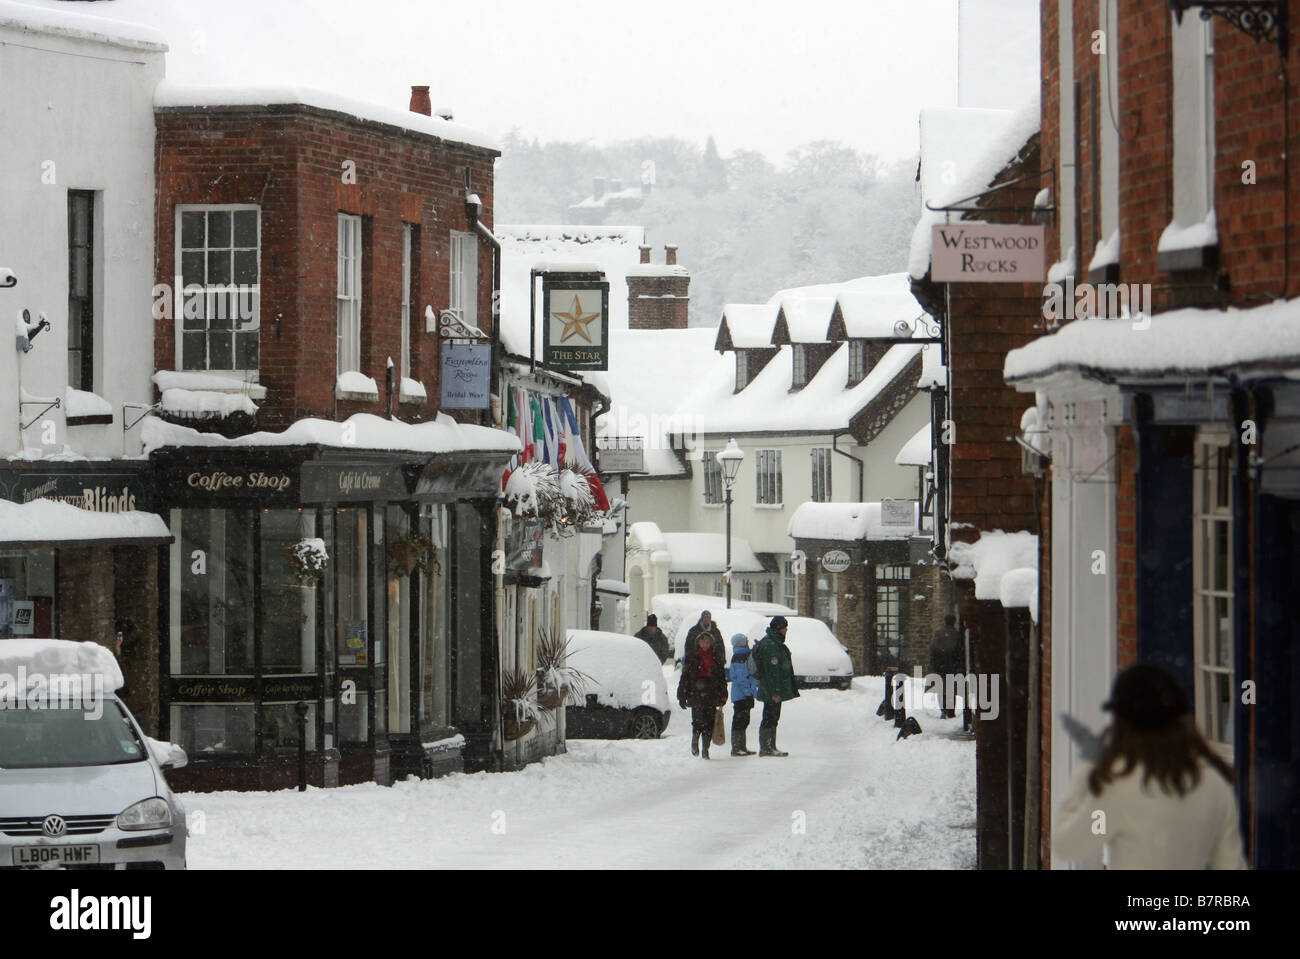 Snow covers Church Street in Godalming, England - Stock Image